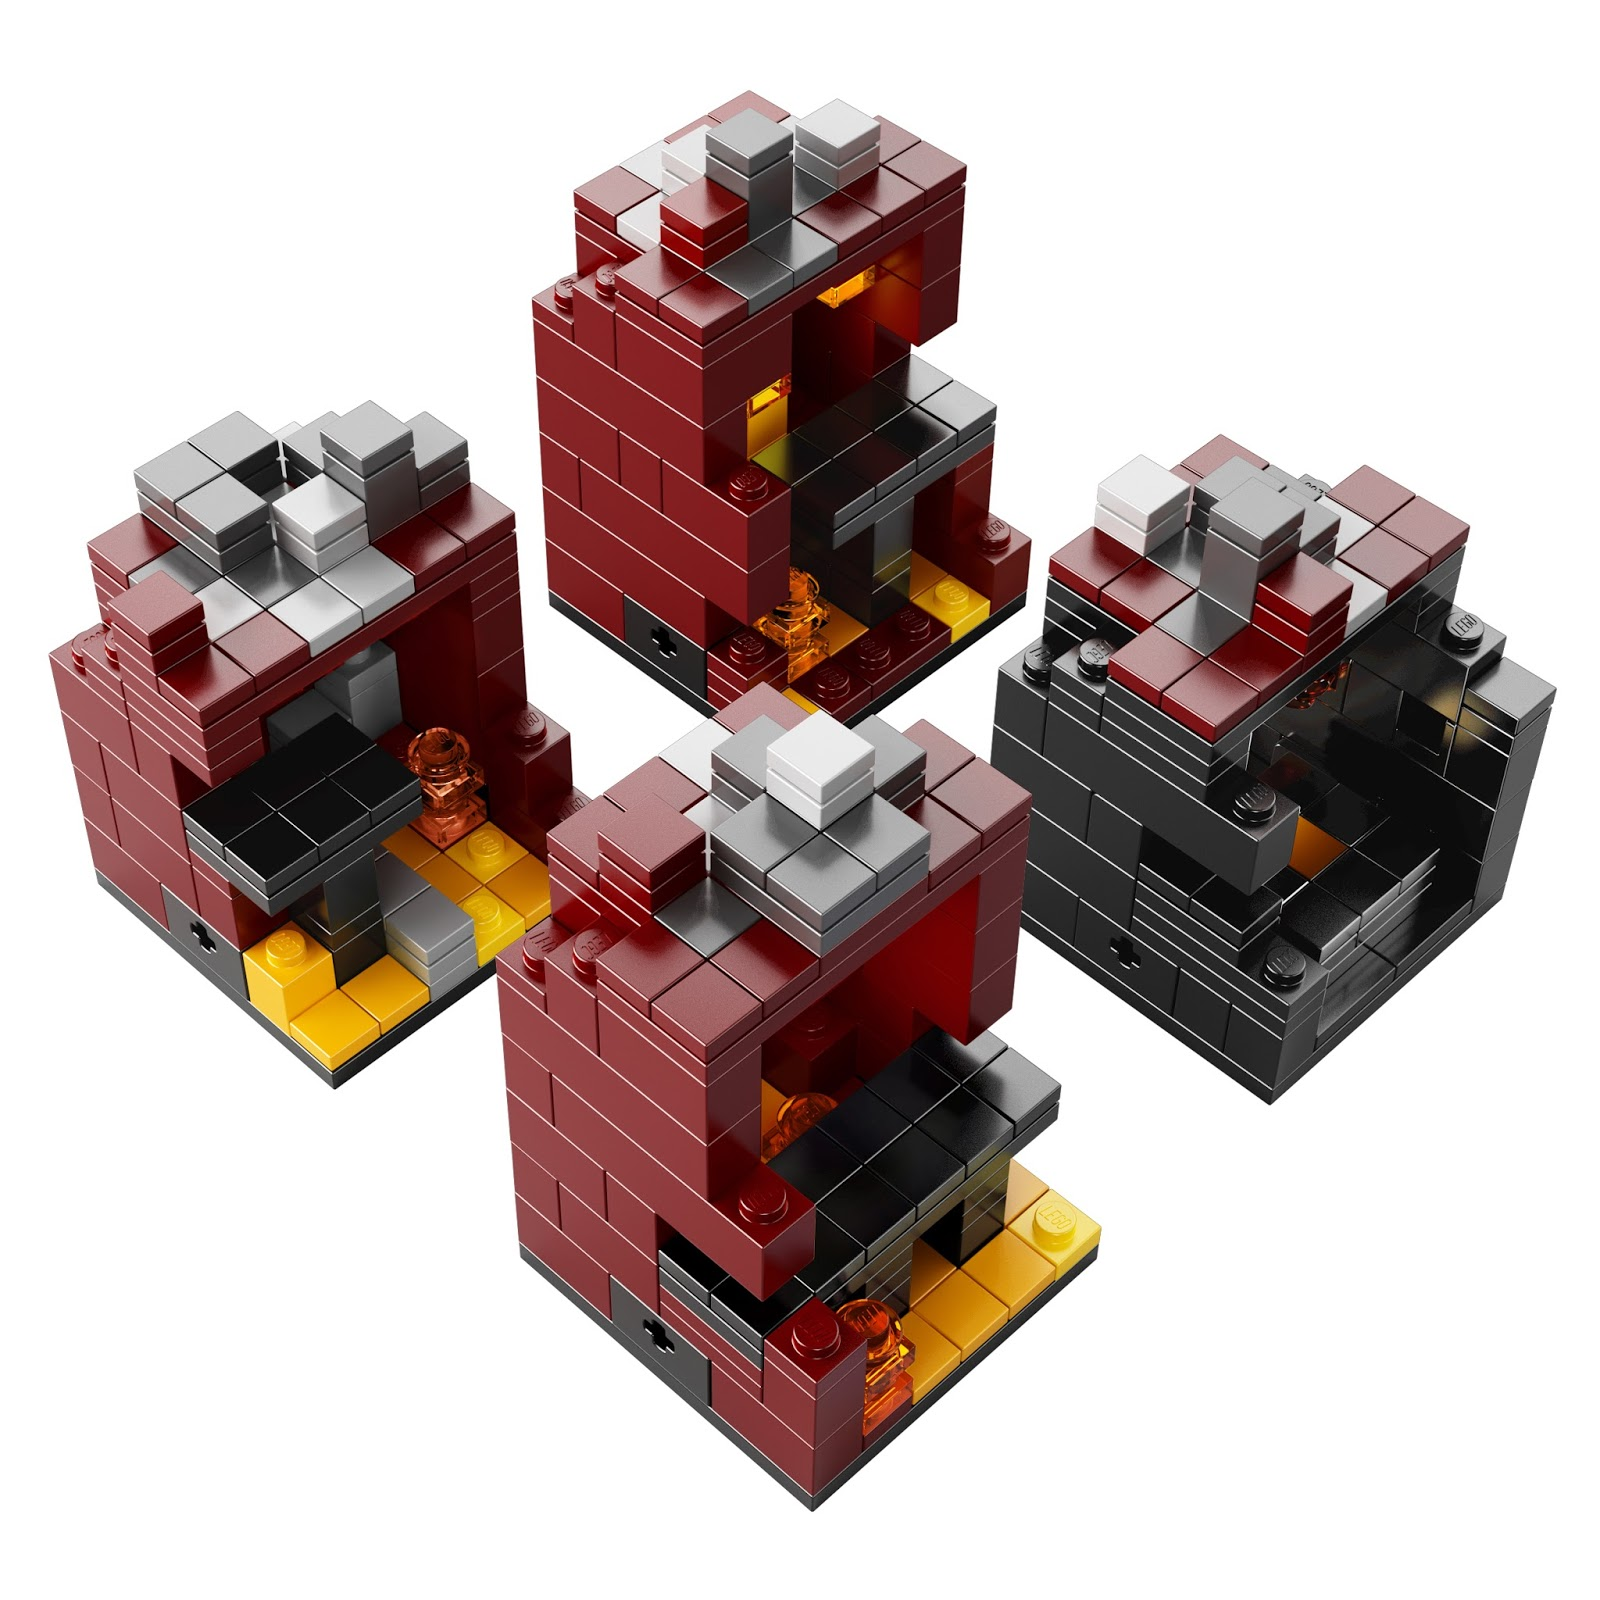 The Brickverse Official Images Of The New Minecraft Sets